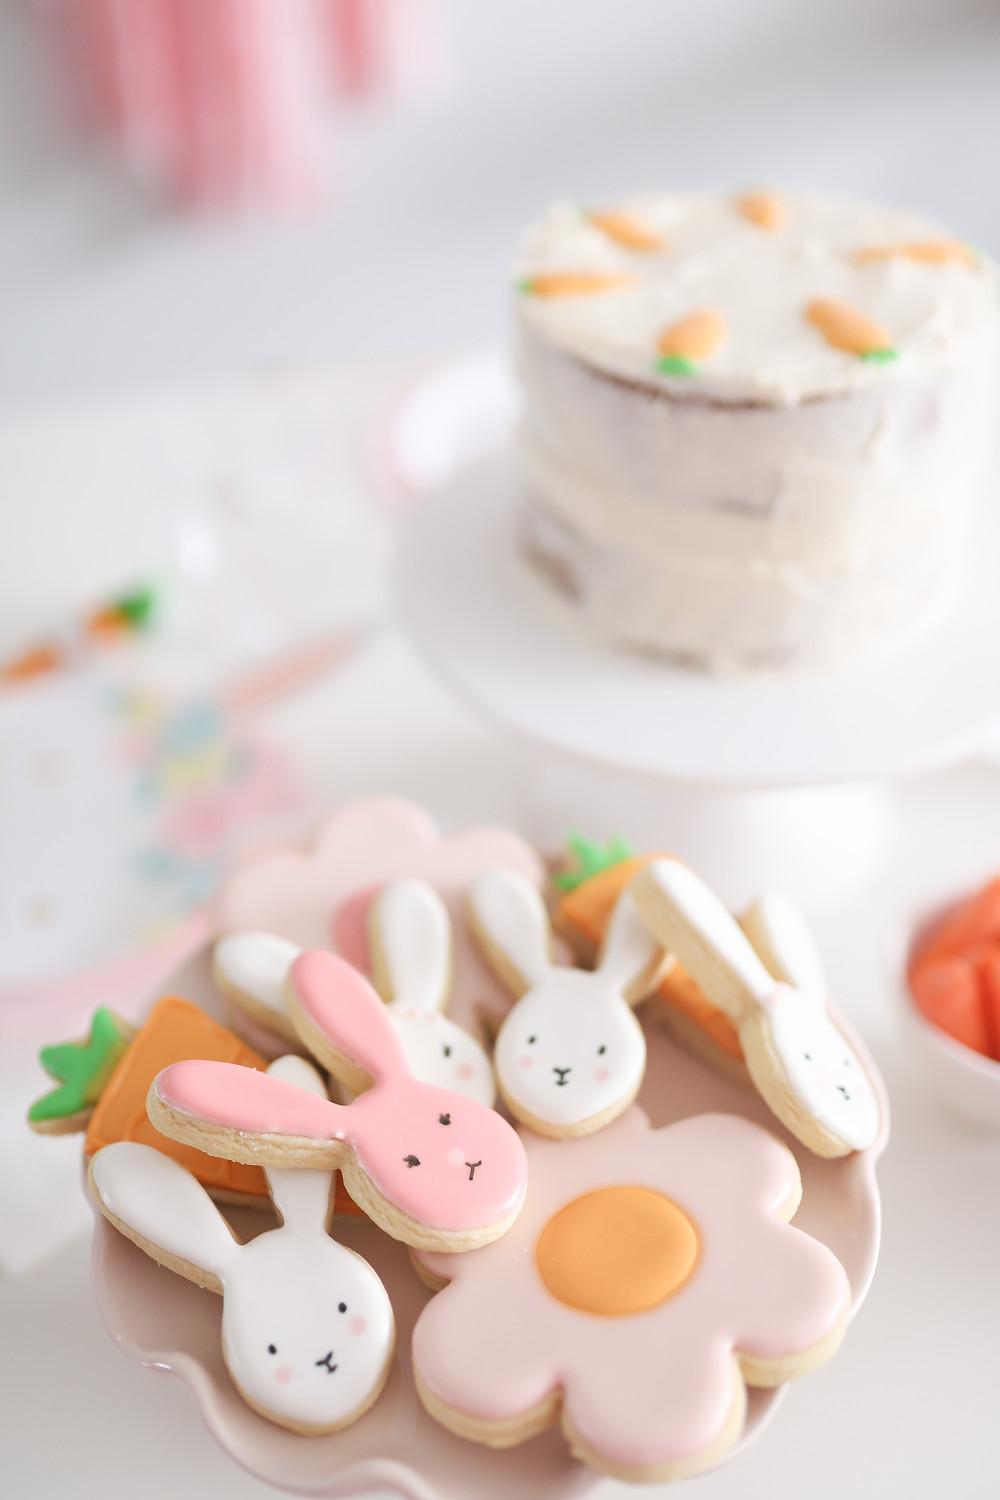 Some beautiful bunny cookies on a pink glass plate ready for an Easter celebration.